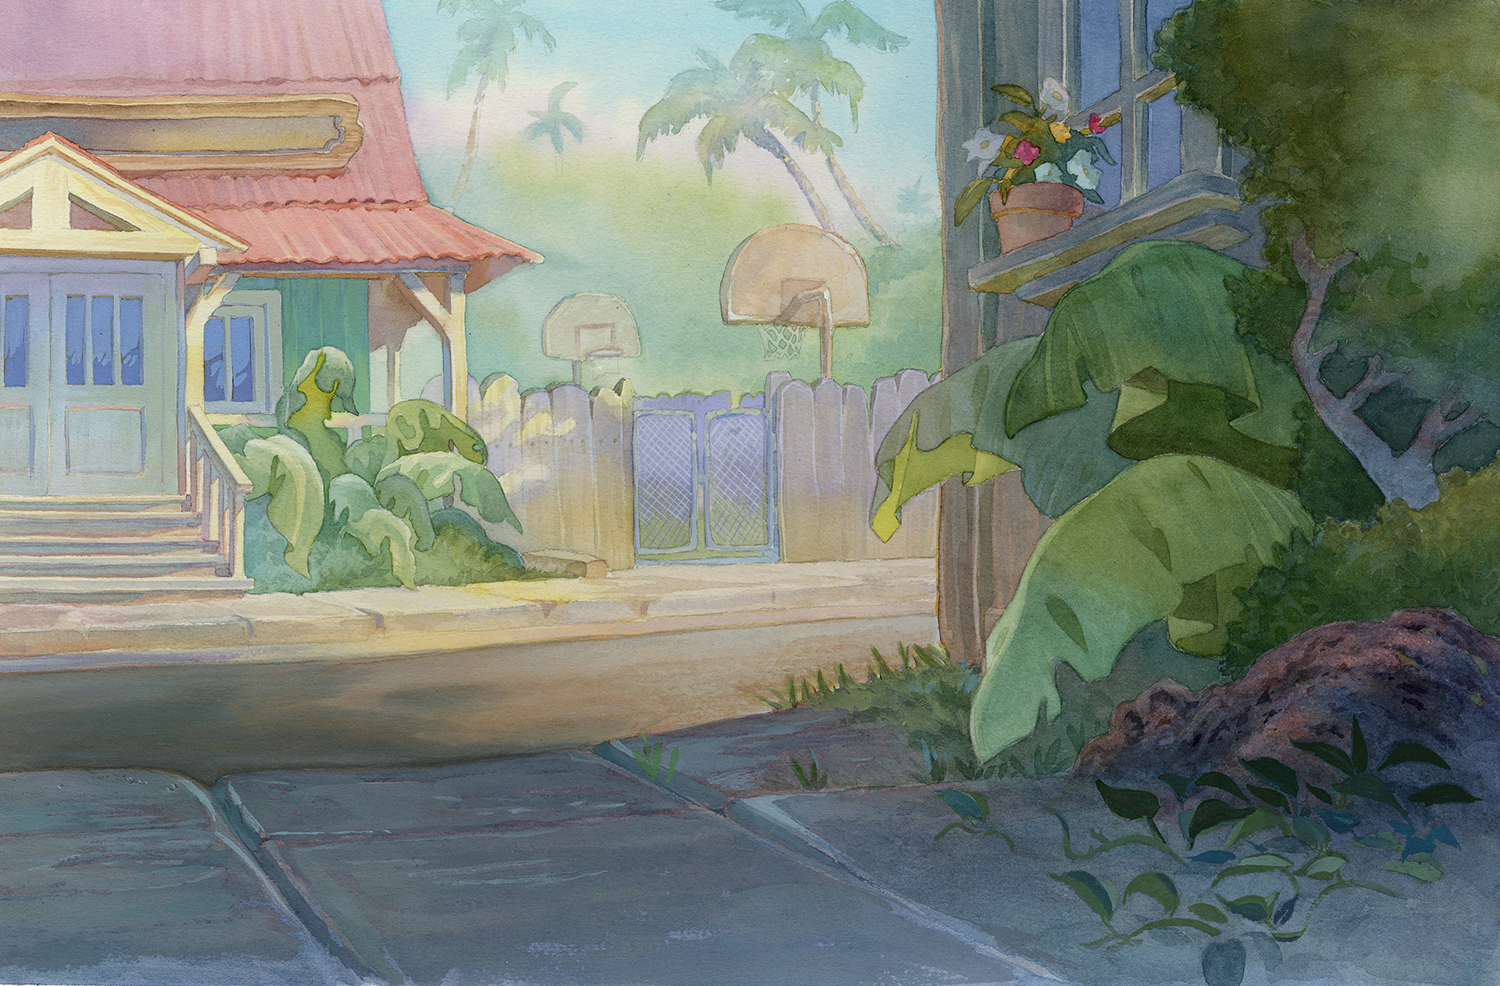 lilo and stitch concept art id julylilostitch0066 van eaton